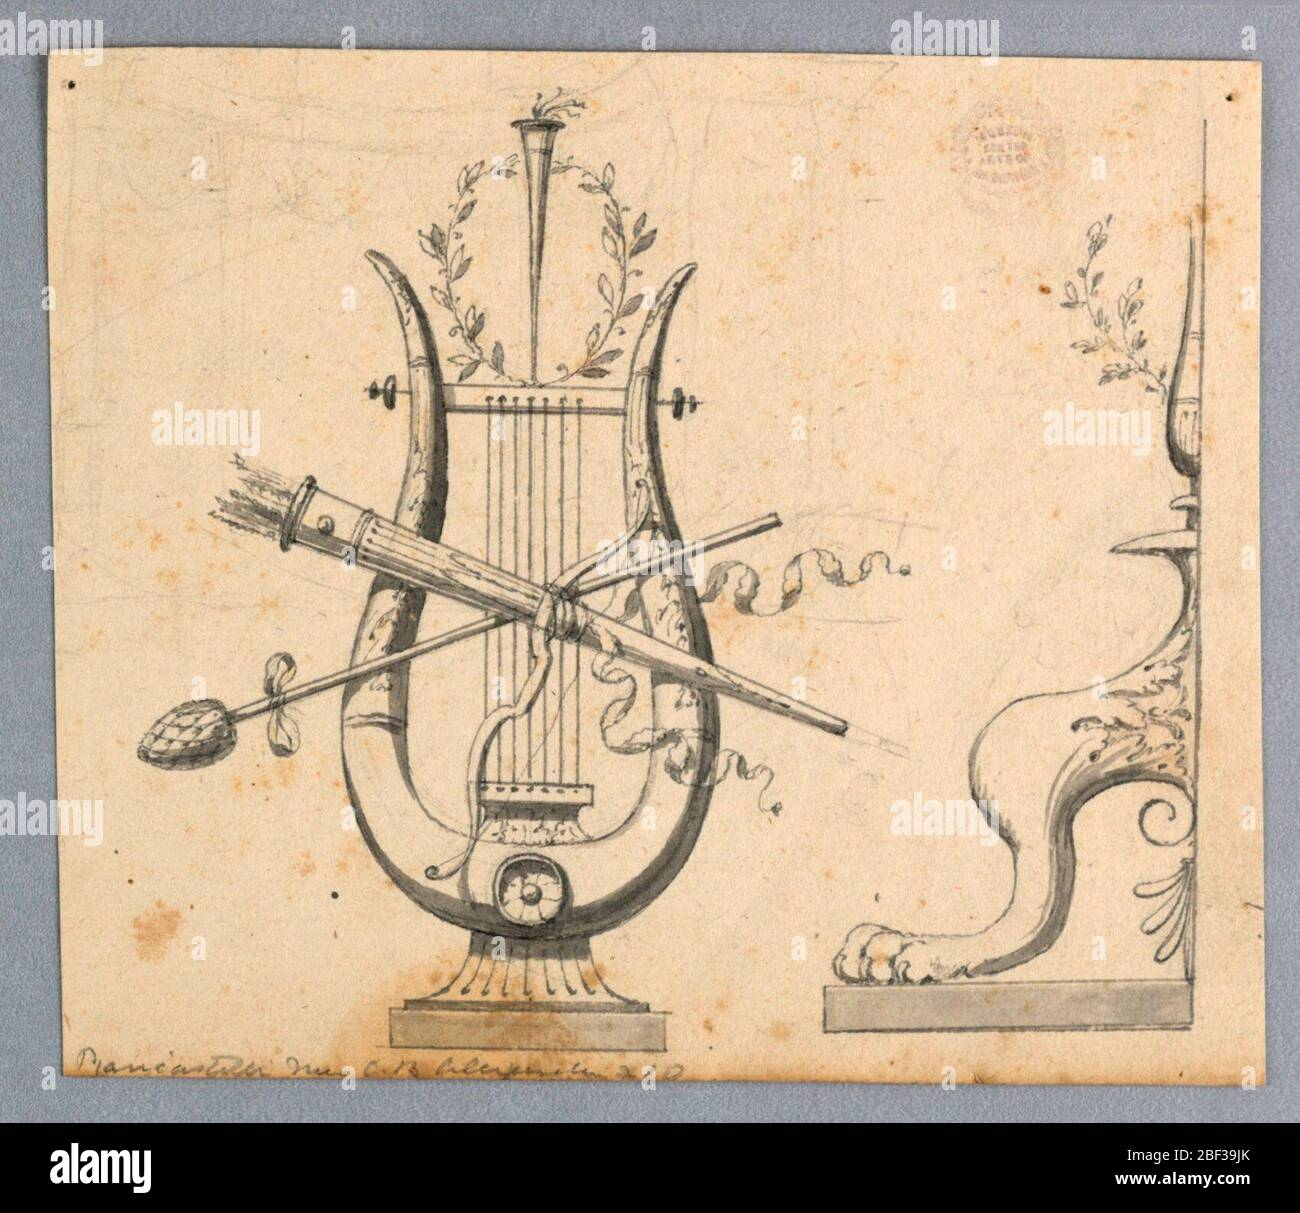 Design for Decorative Motifs. At left, a lyre with a bow, a thyrsus, a quiver in front of it, with a torch and a wreath on top of it. At right is the left half of the foot of a candelabrum. Stock Photo